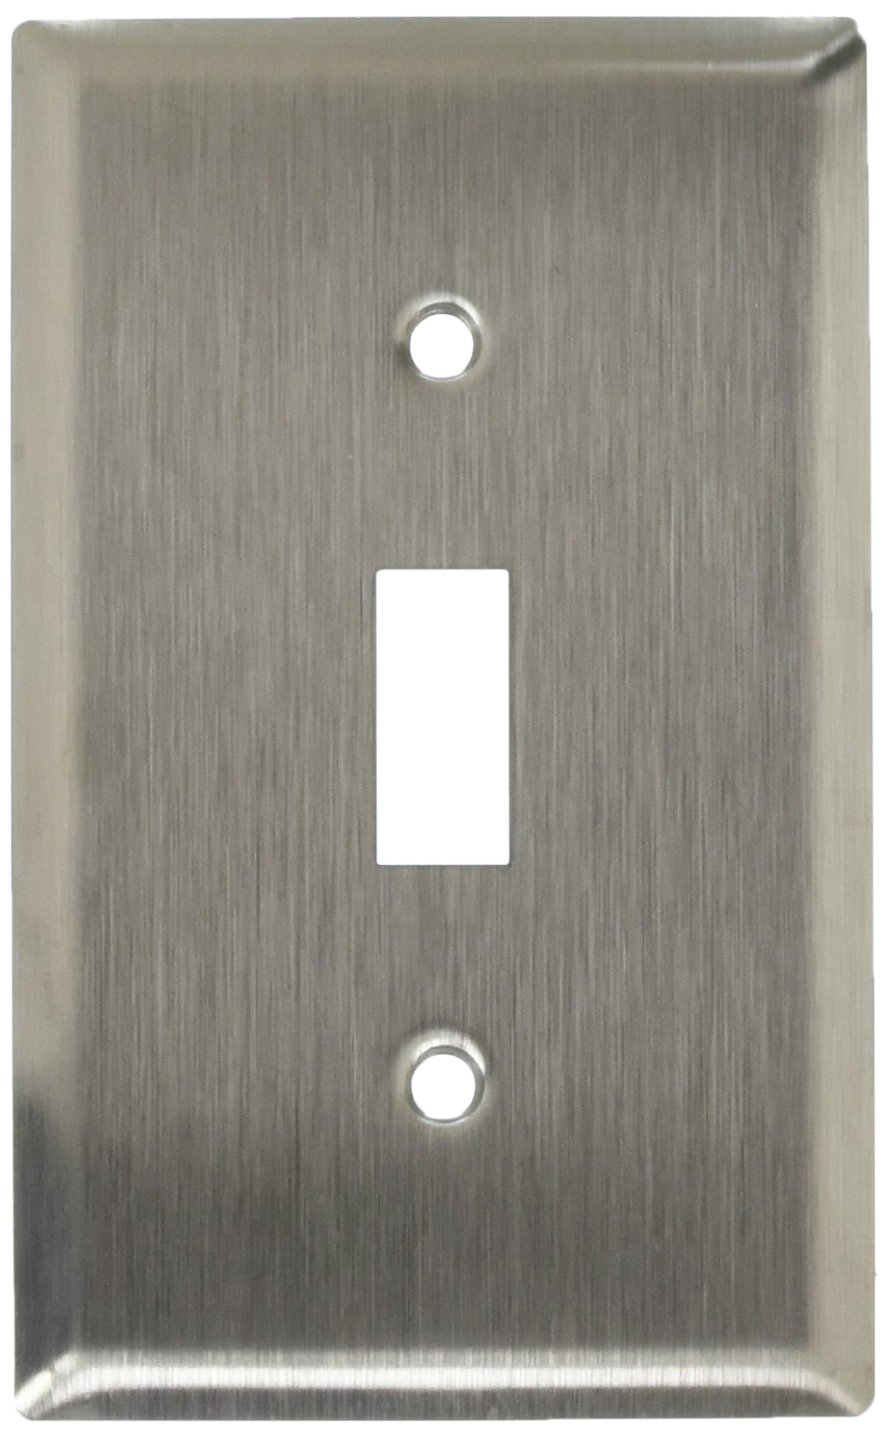 Electrical Supplies Cooper Stainless Steel 1 Gang Toggle Switch Wall Plate Cover Switchplate 93071 Home Garden Gefradis Fr